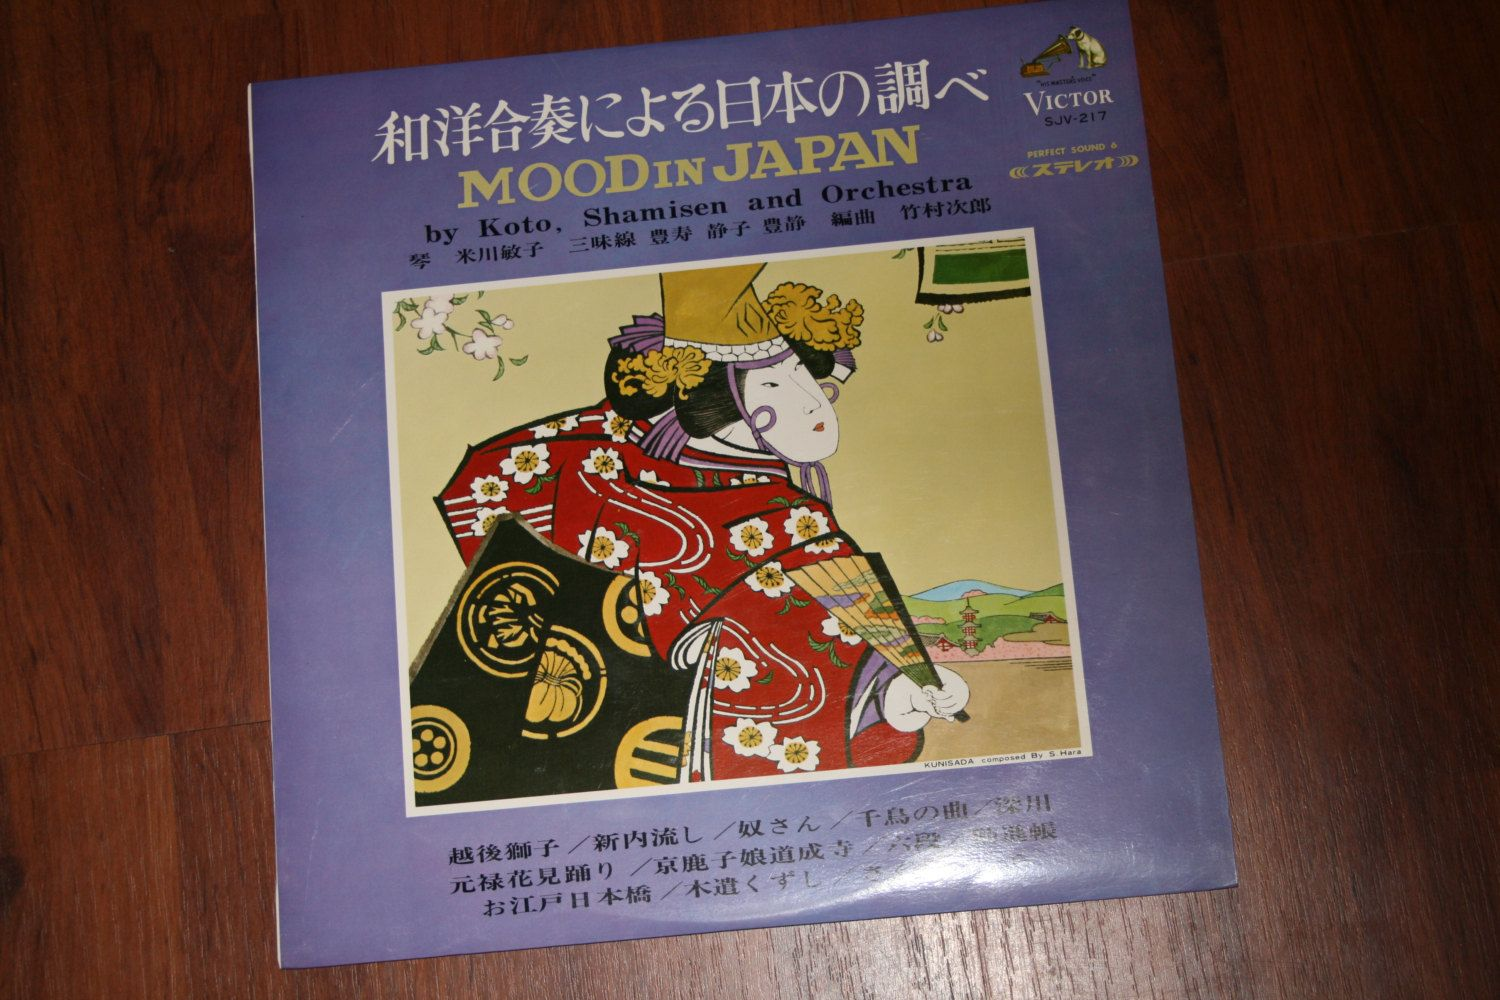 Vinyl Record Vintage Music 33 1/3 RPM Victor Asian Chinese Japanese Stereo Mood In Japan by Koto, Samisen and Orchestra - pinned by pin4etsy.com